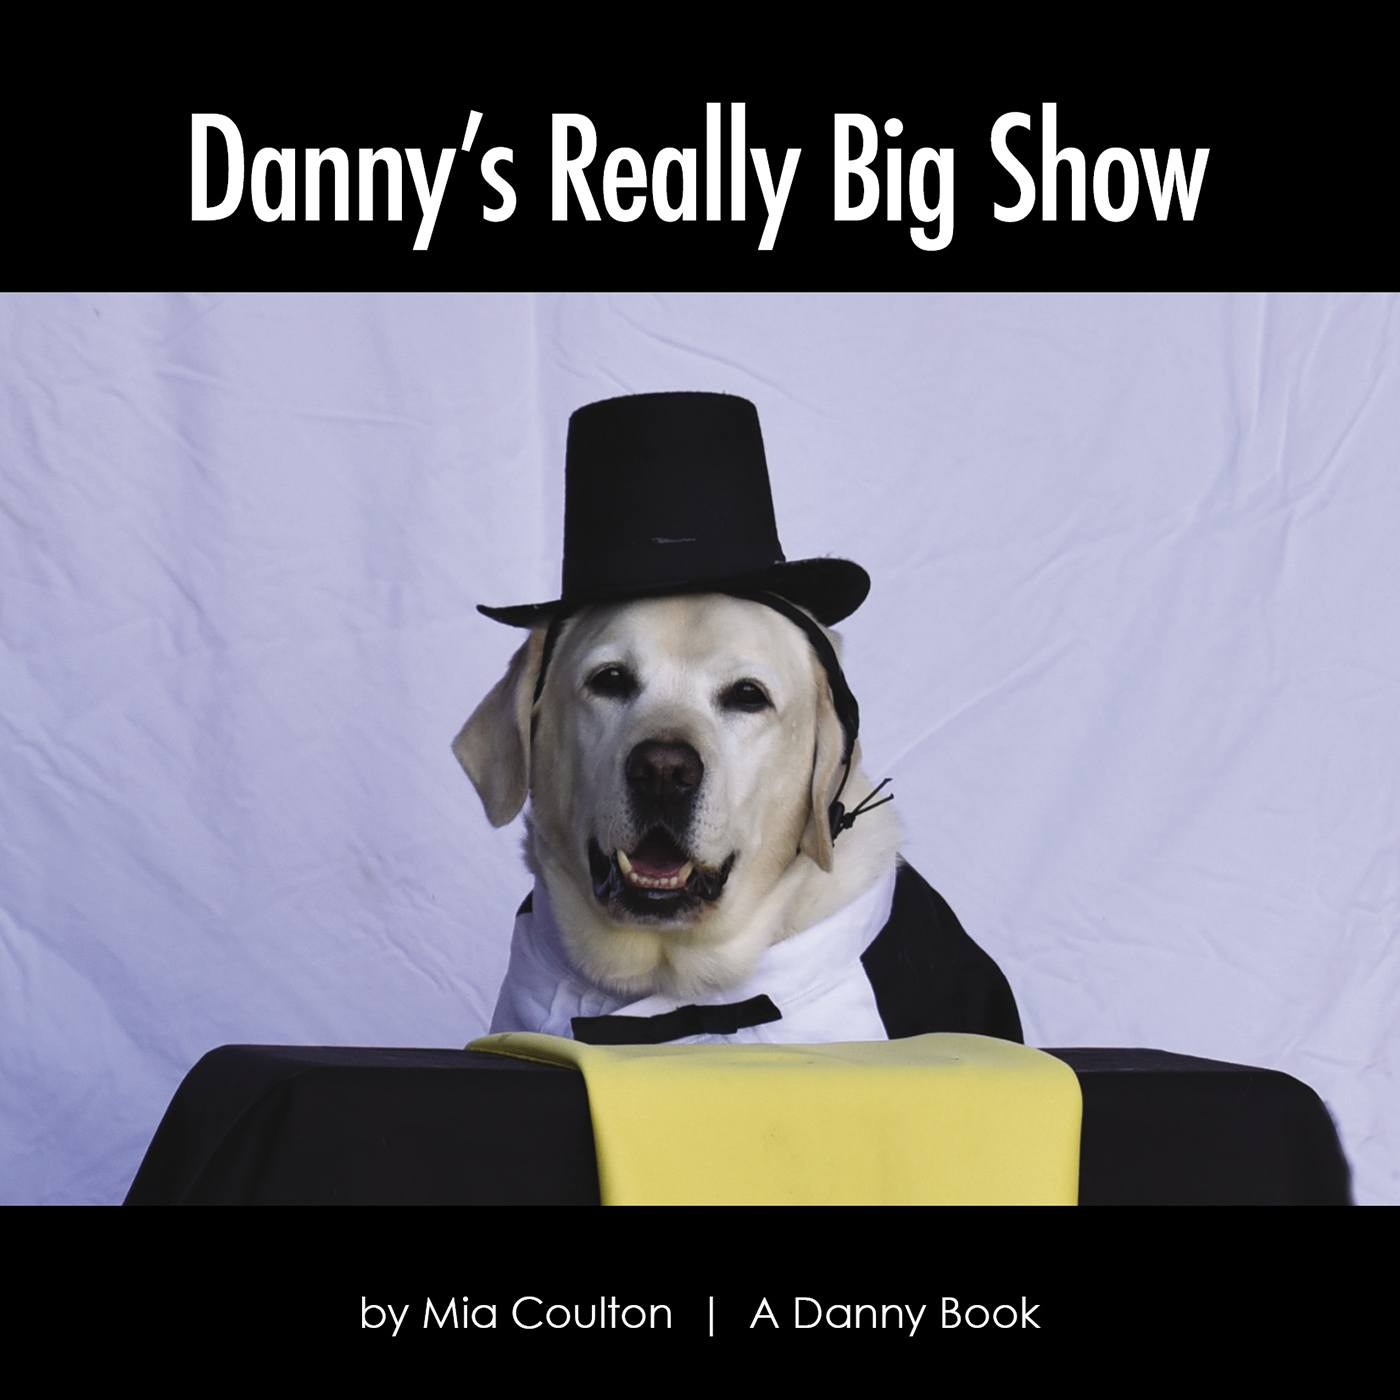 Danny's Really Big Show Cover